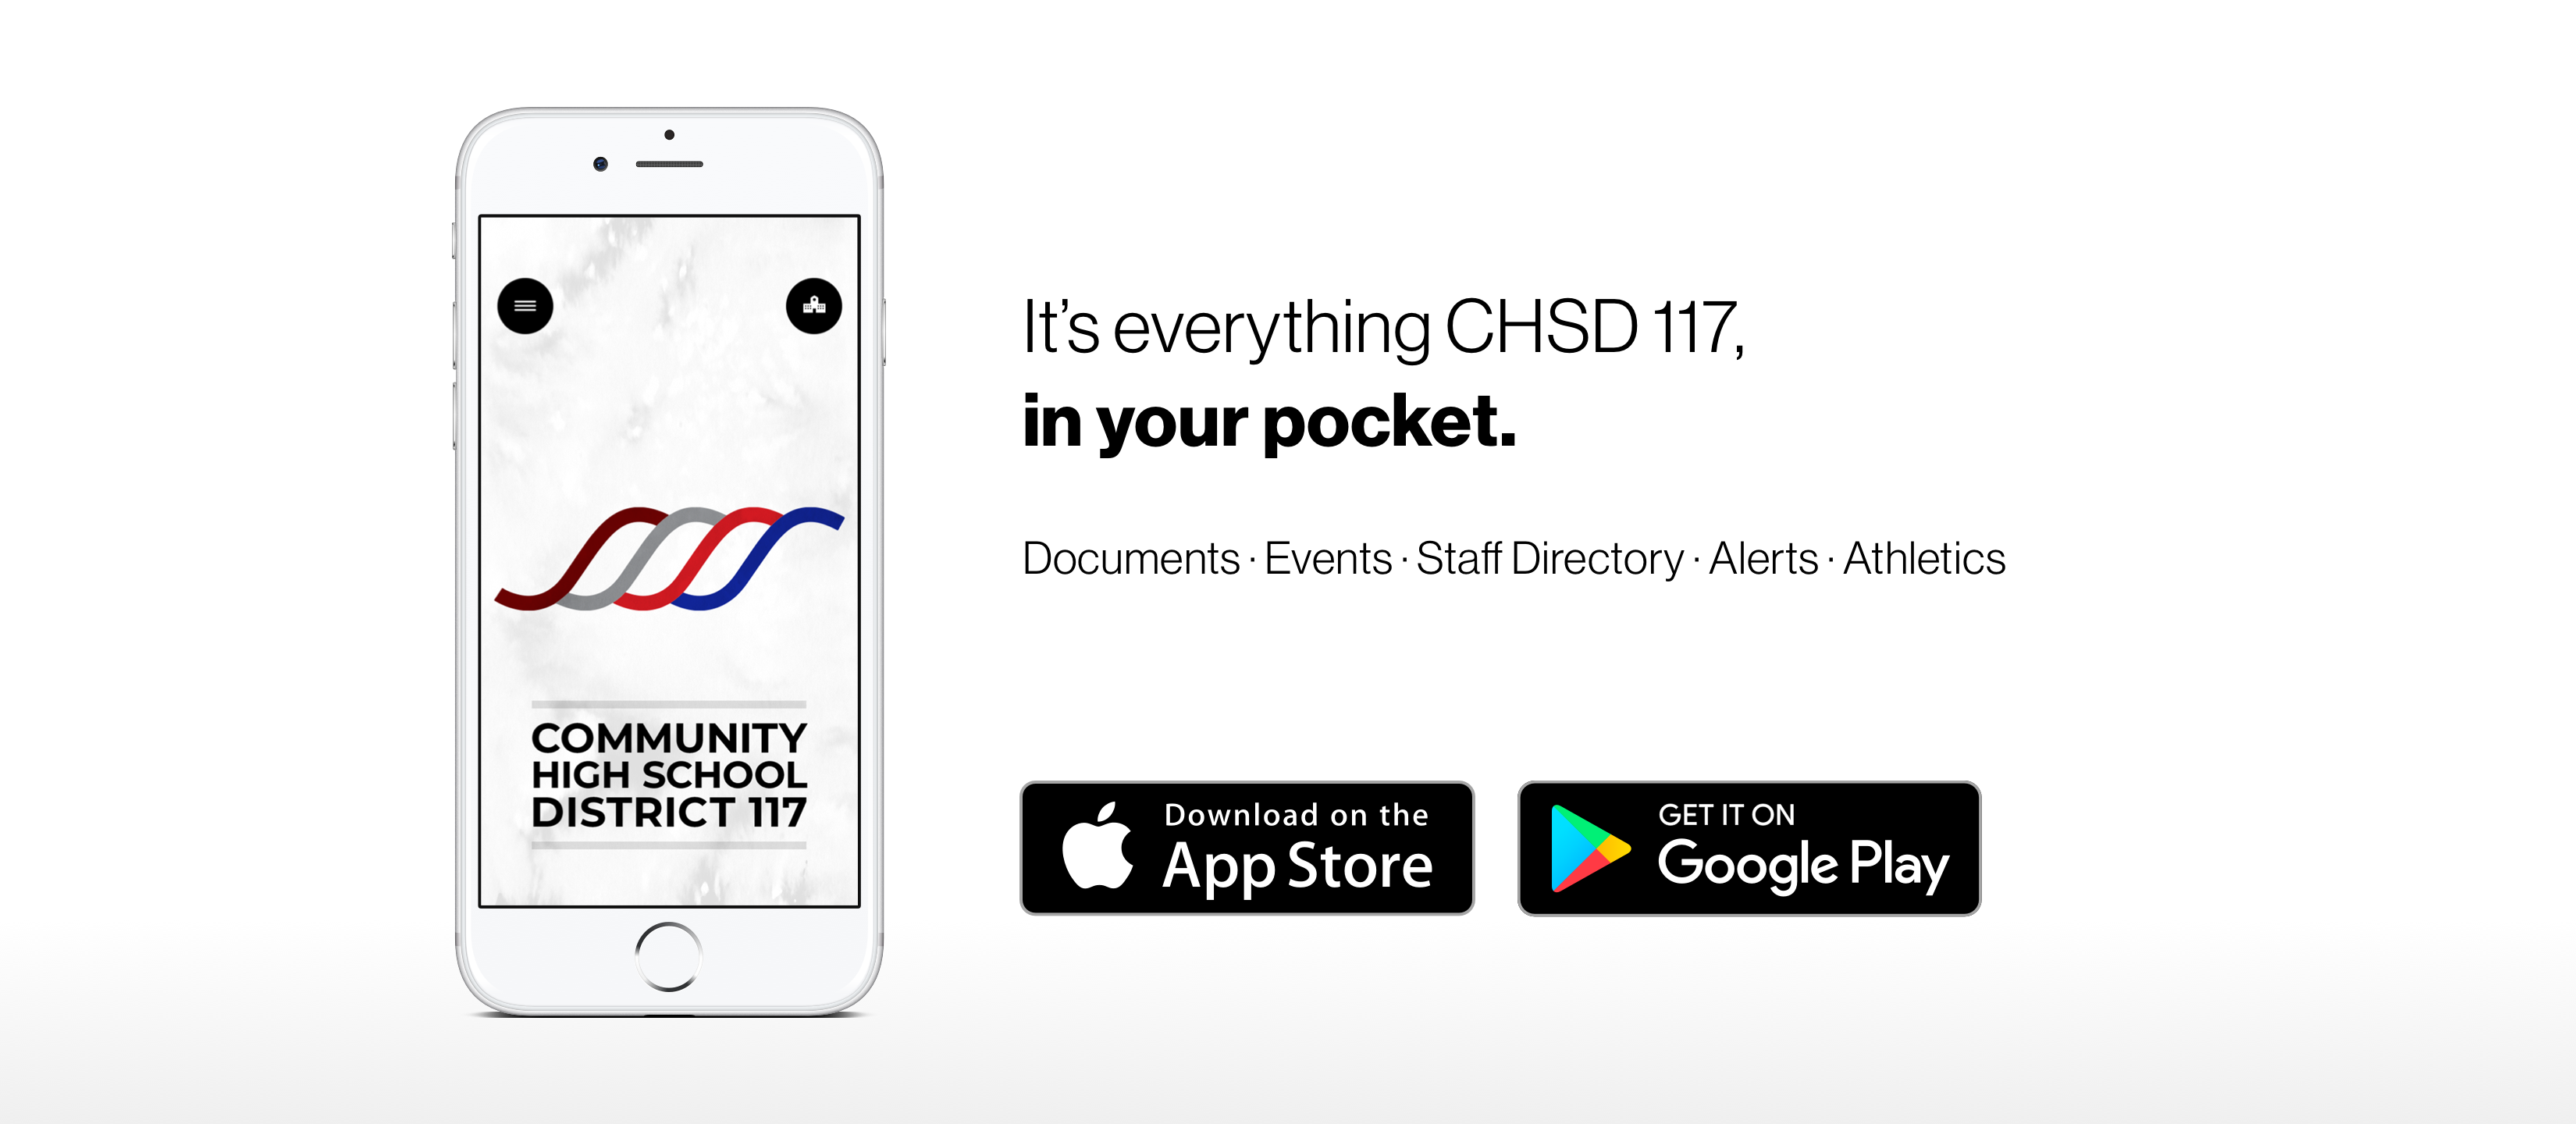 CHSD117 Mobile App Marketing Image